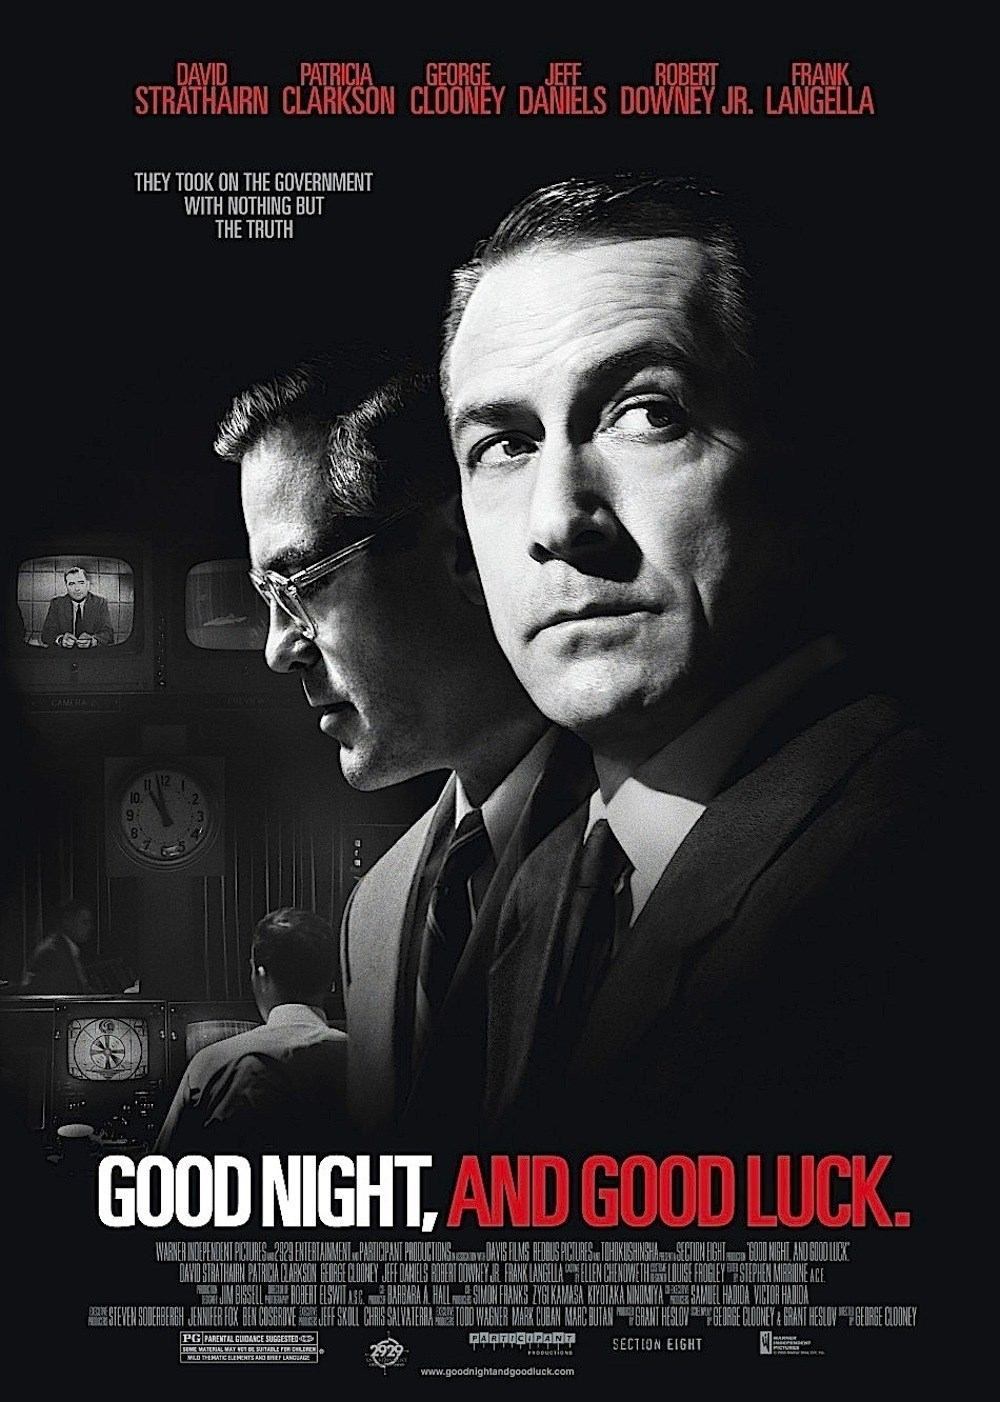 good-night,-and-good-luck.-poster 01